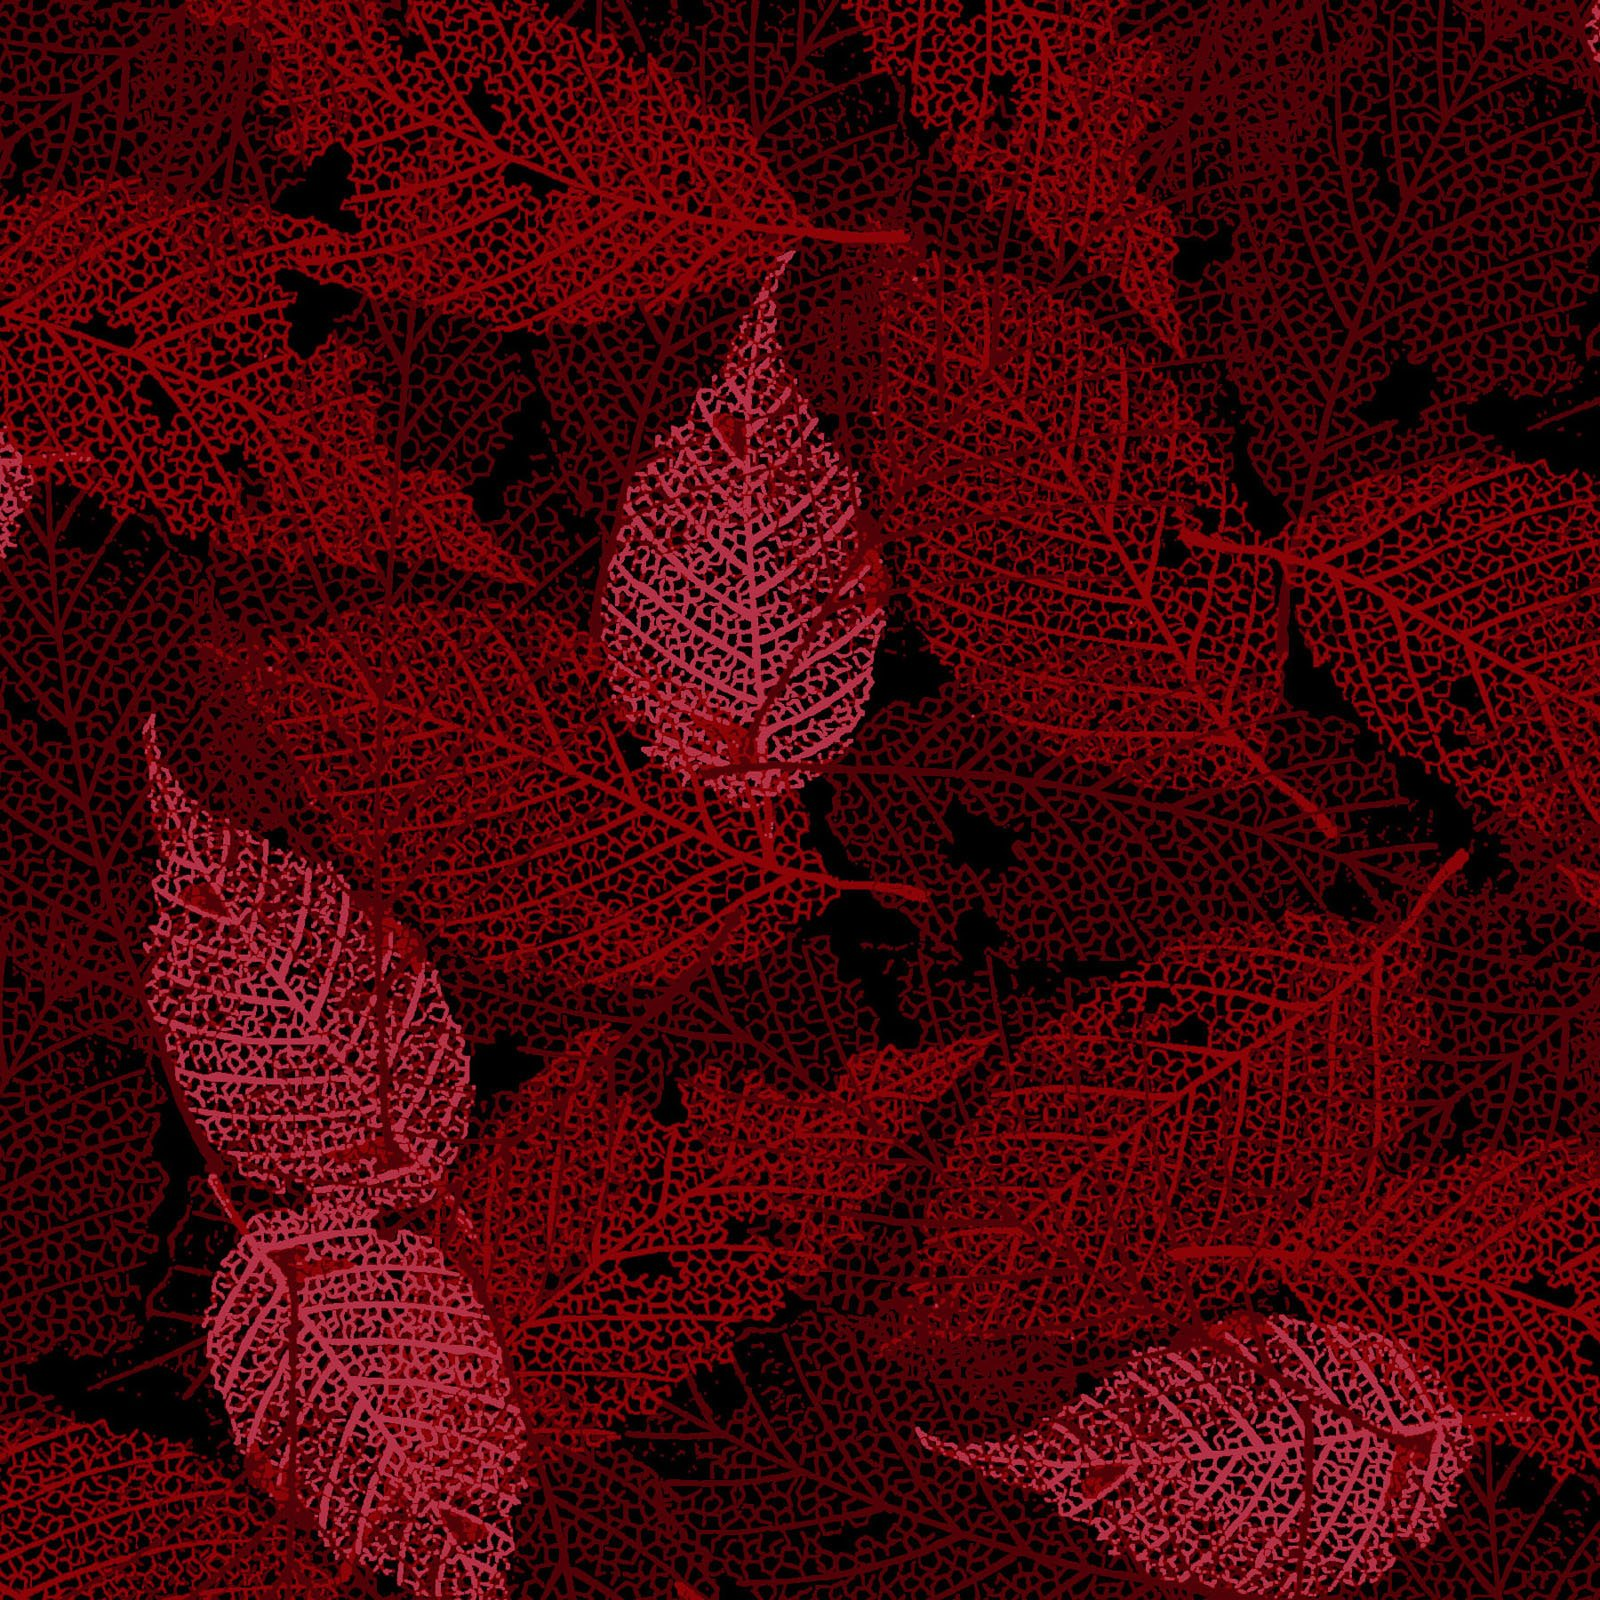 FOLI-4478 DR - FOLIAGE BY P&B BOUTIQUE TEXTURE LEAVES DK RED - ARRIVING IN MAY 2021